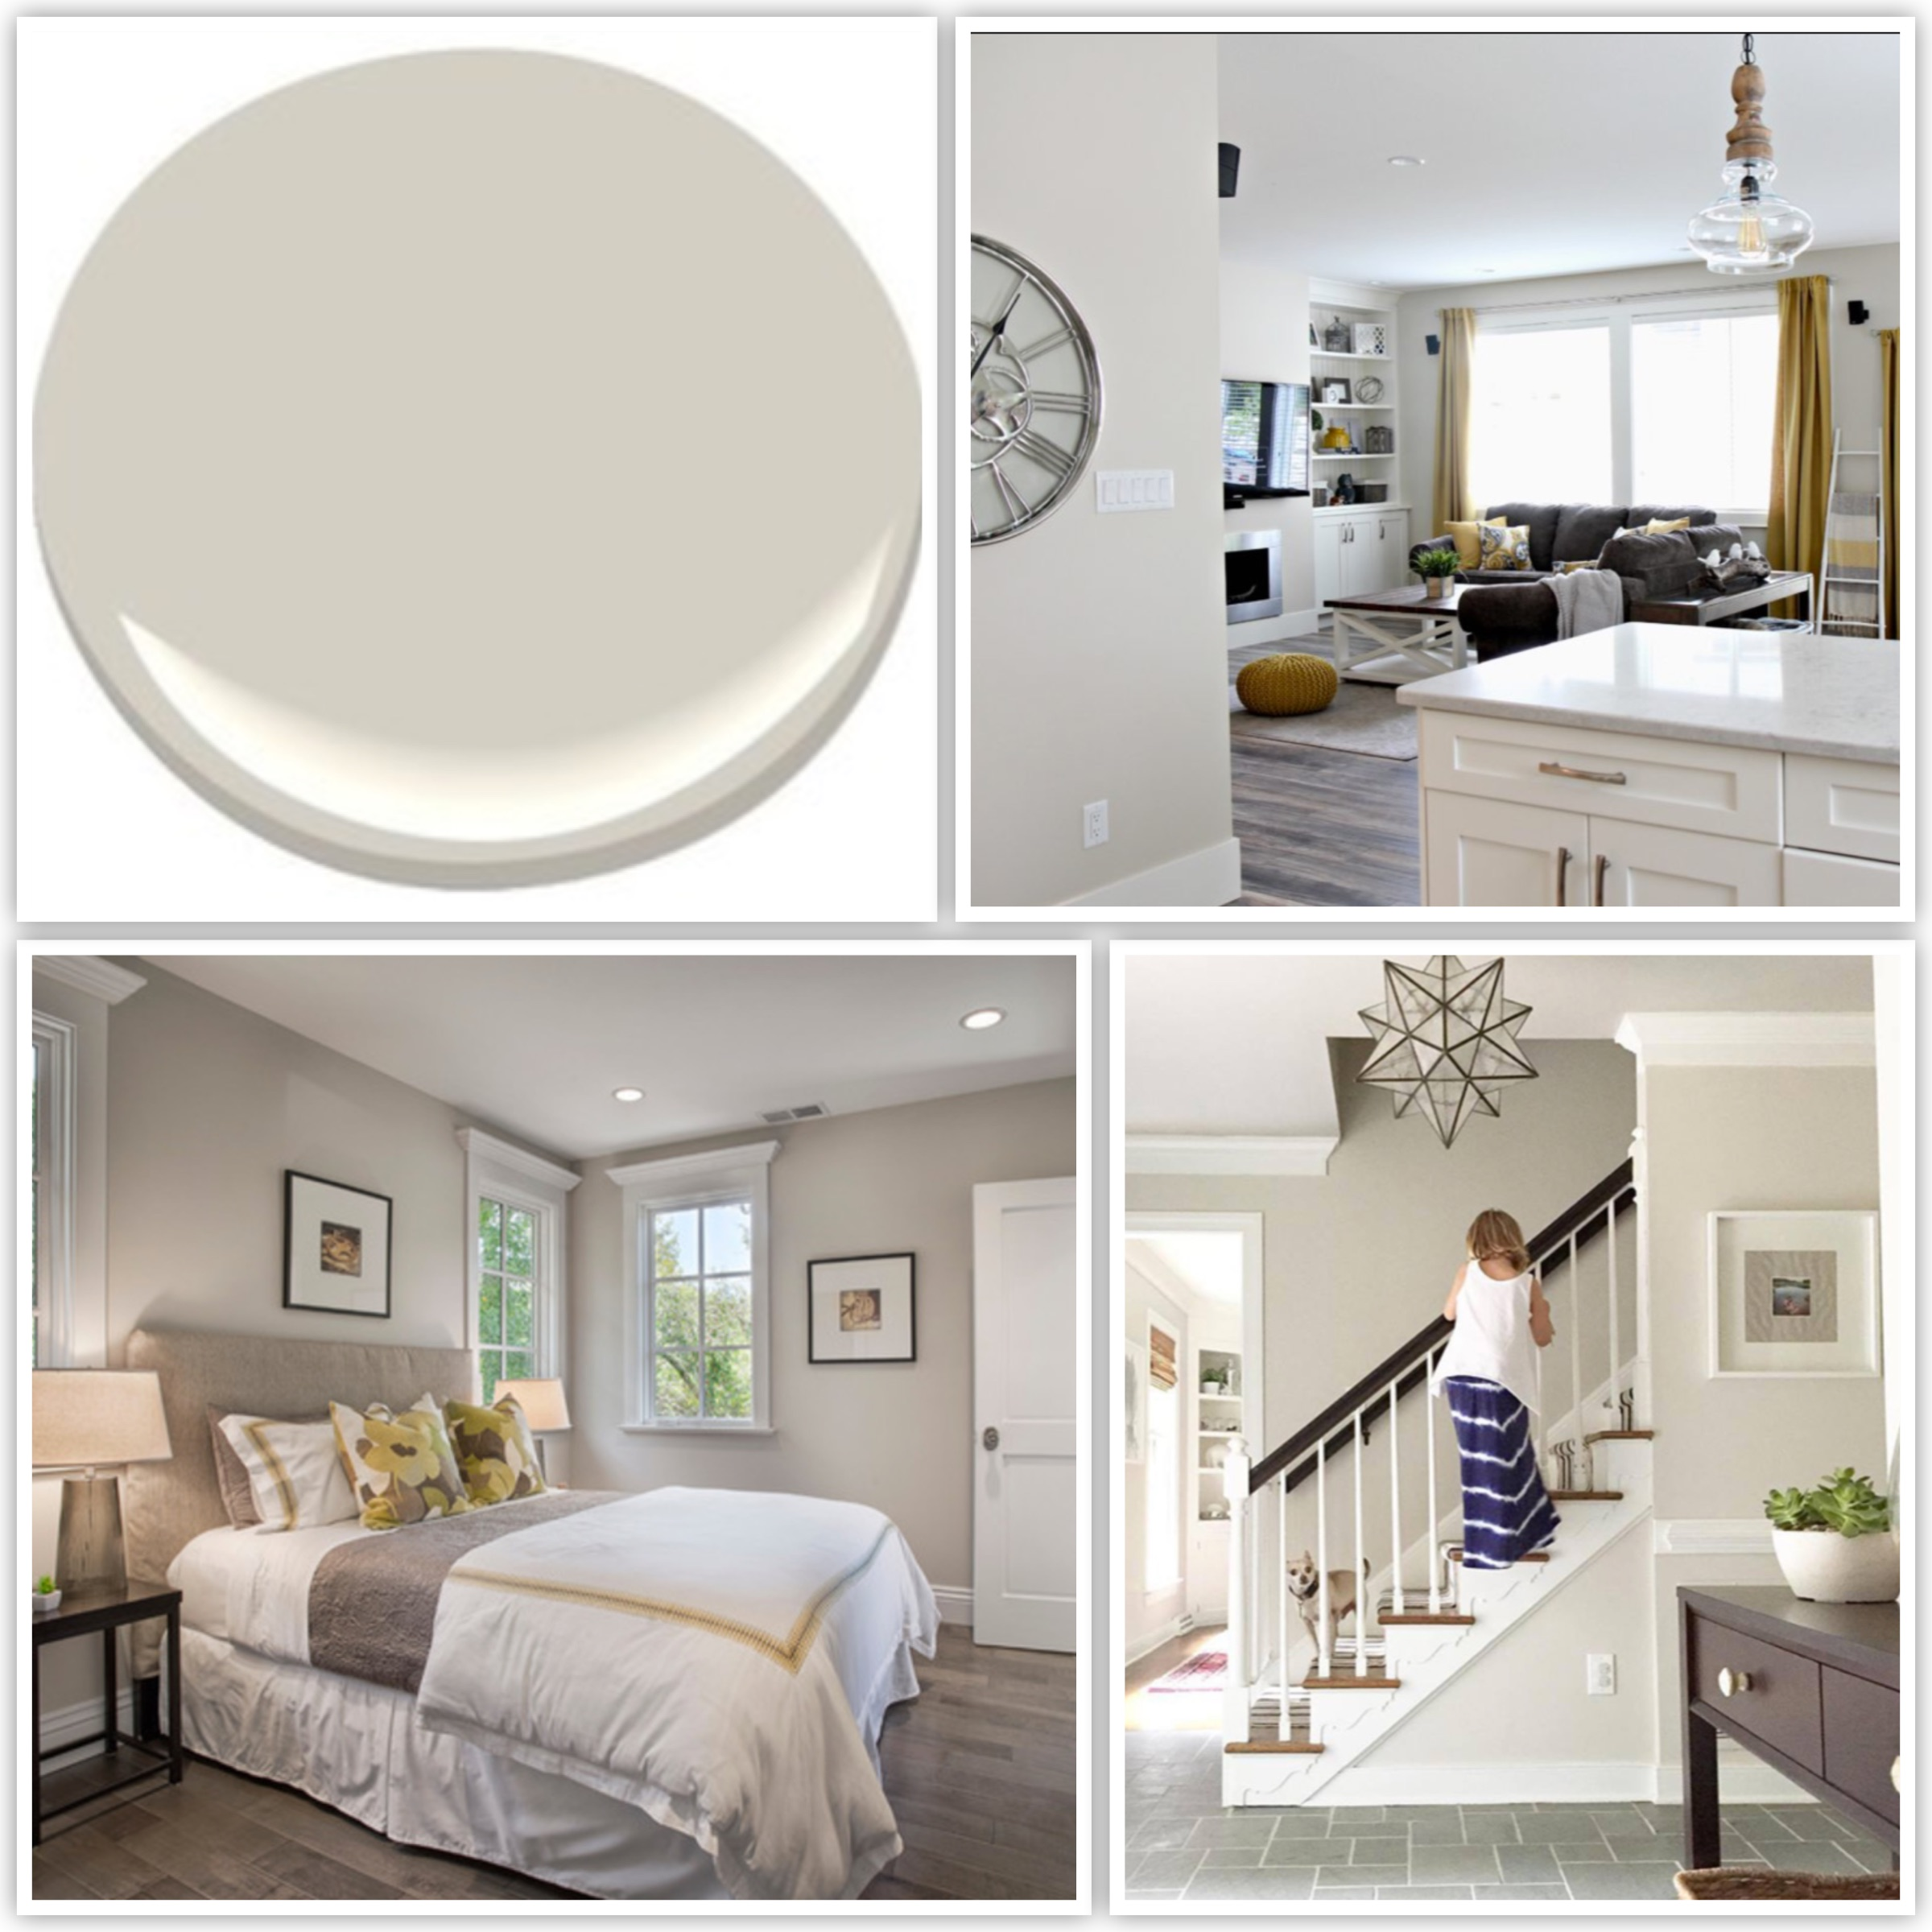 Benjamin Moore Best Selling Colors By Room Choosing The Right Paint Colour For Selling Your Home